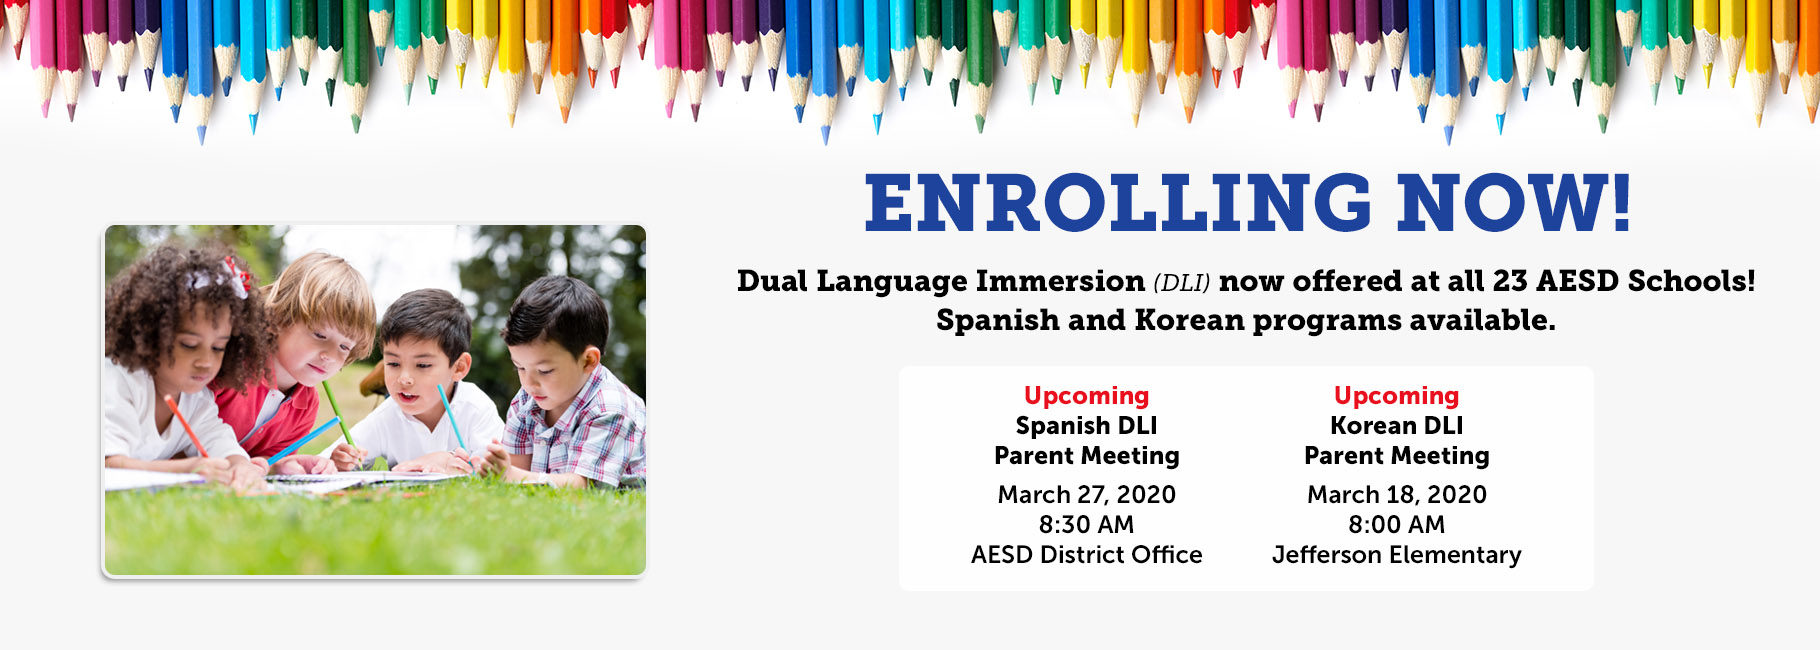 Upcoming DLI Parent Meetings: Spanish- March 27 8:30 AM District Office, Korean - March 18, 8:00 AM Jefferson Elementary